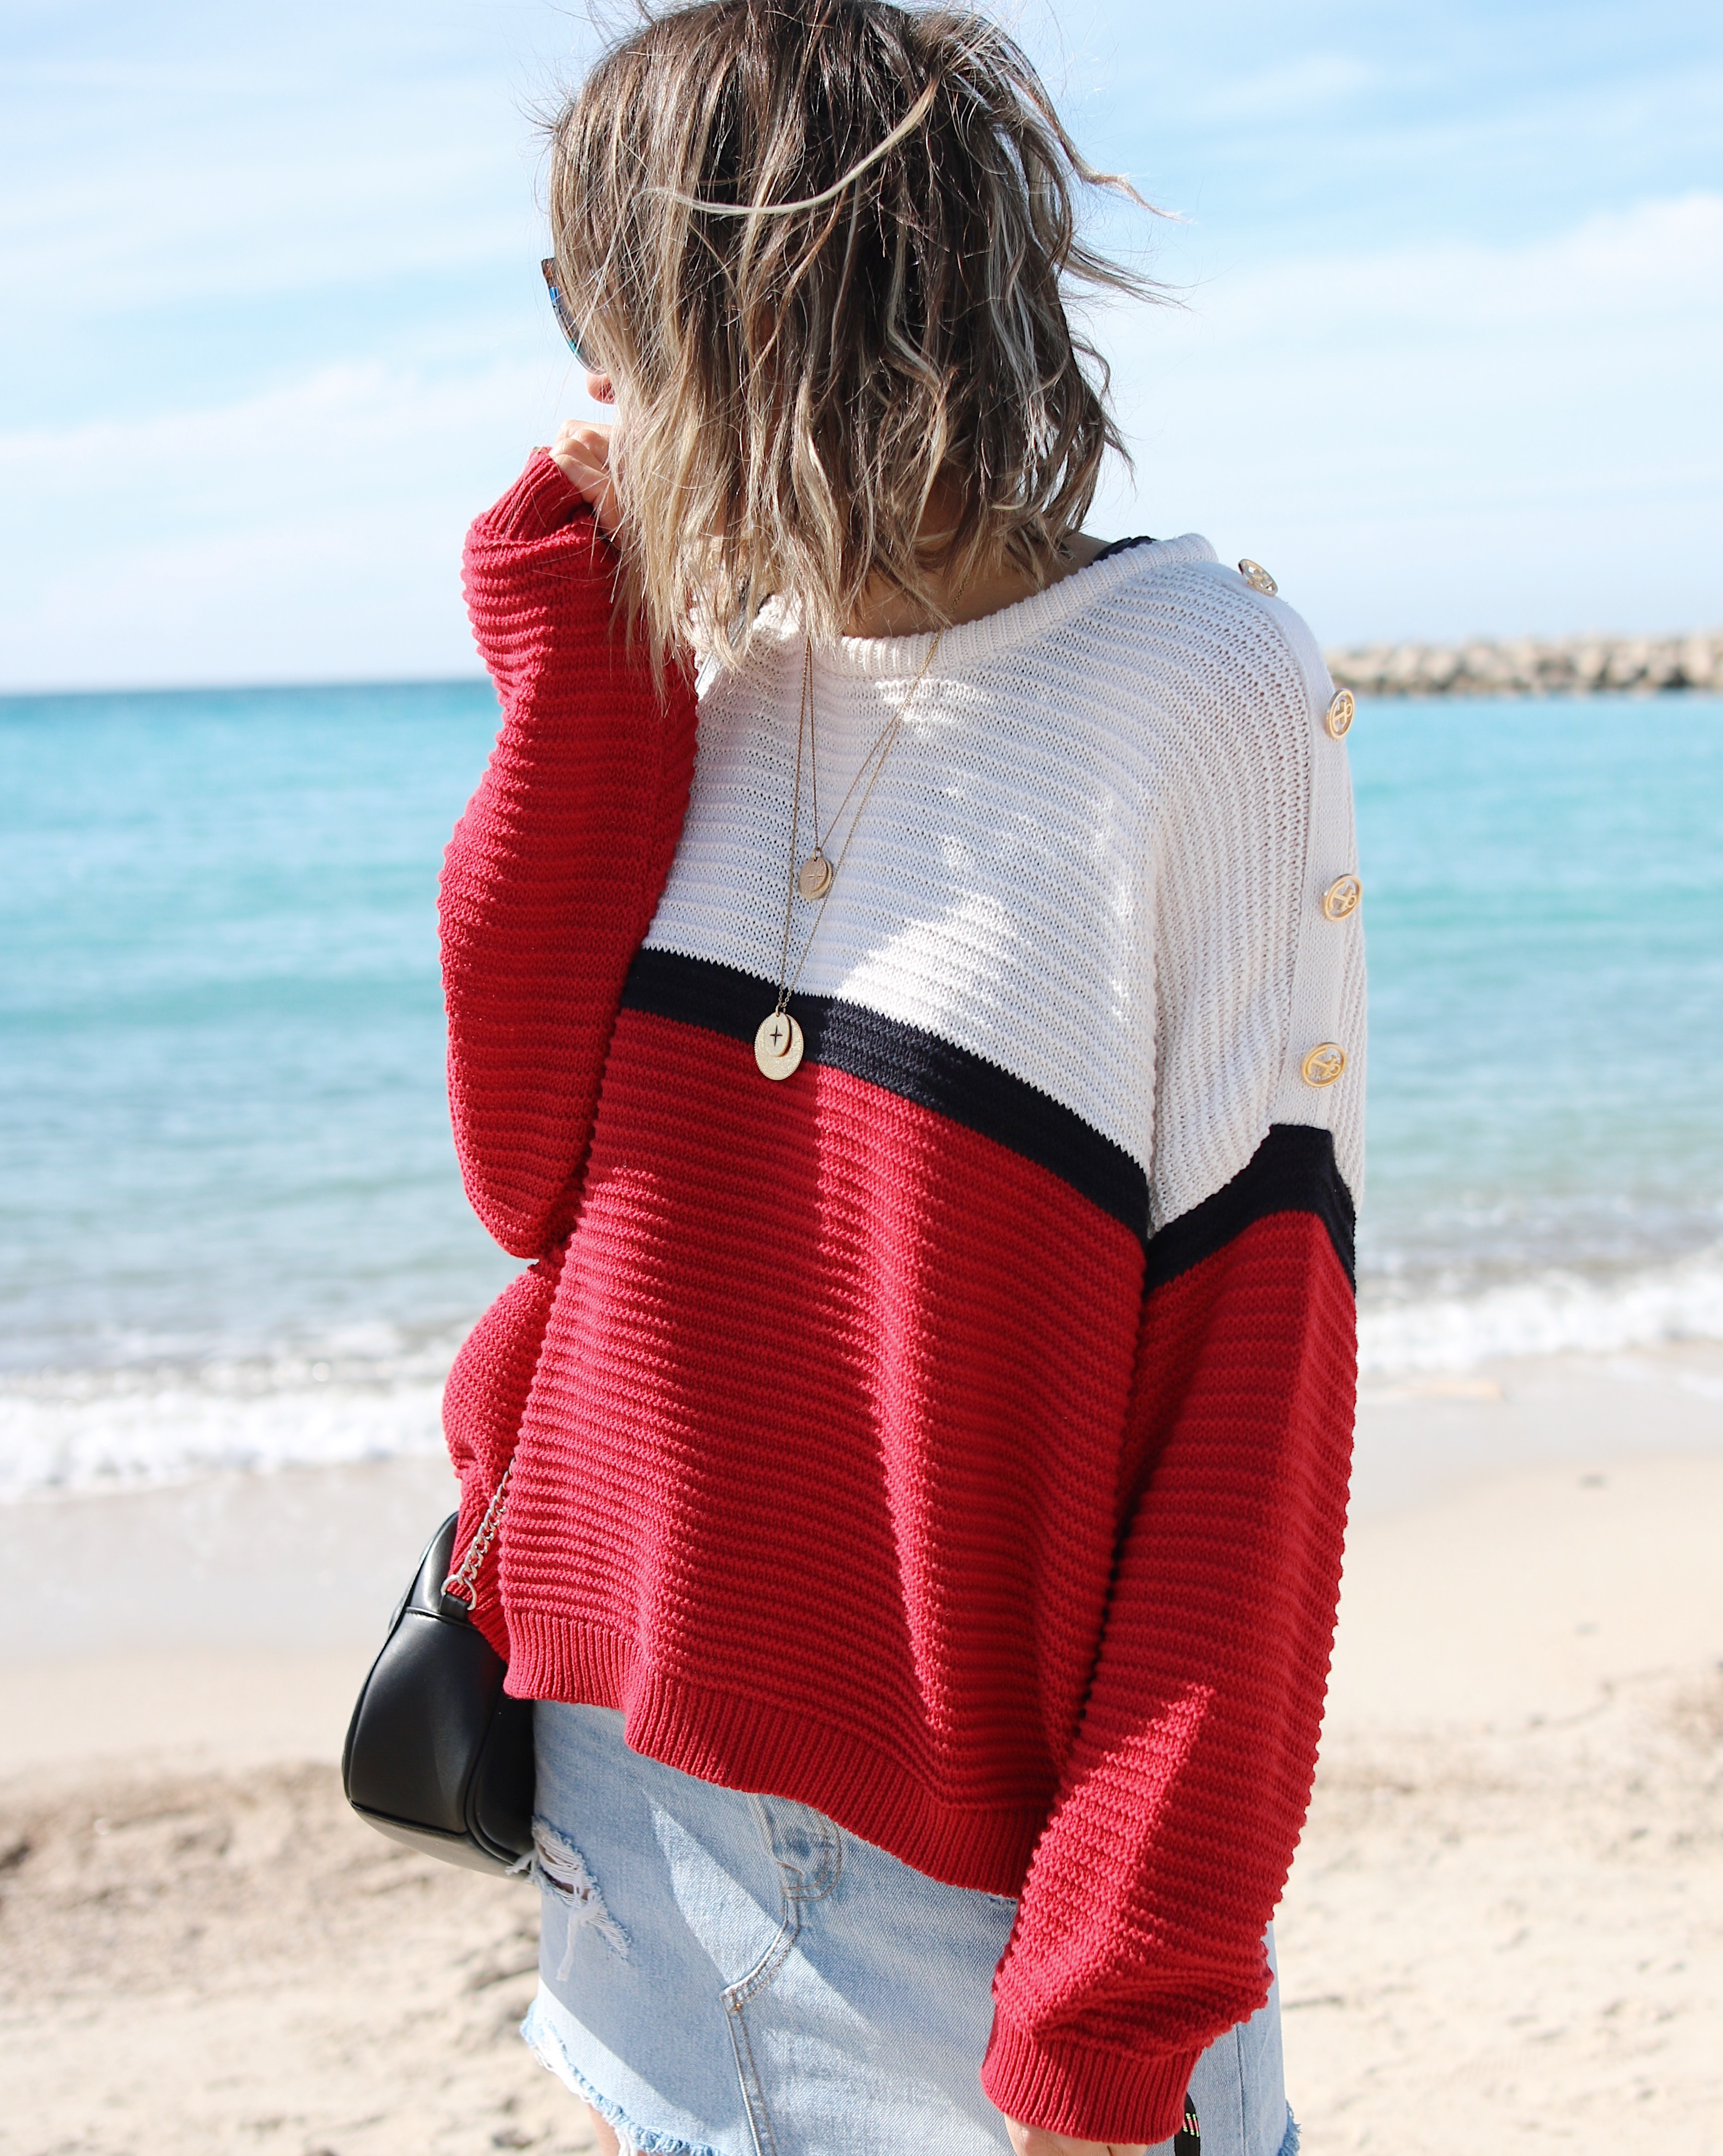 SAILOR GIRL - www.chonandchon.com - sailor weater, knit lover, knit style, denim skirt